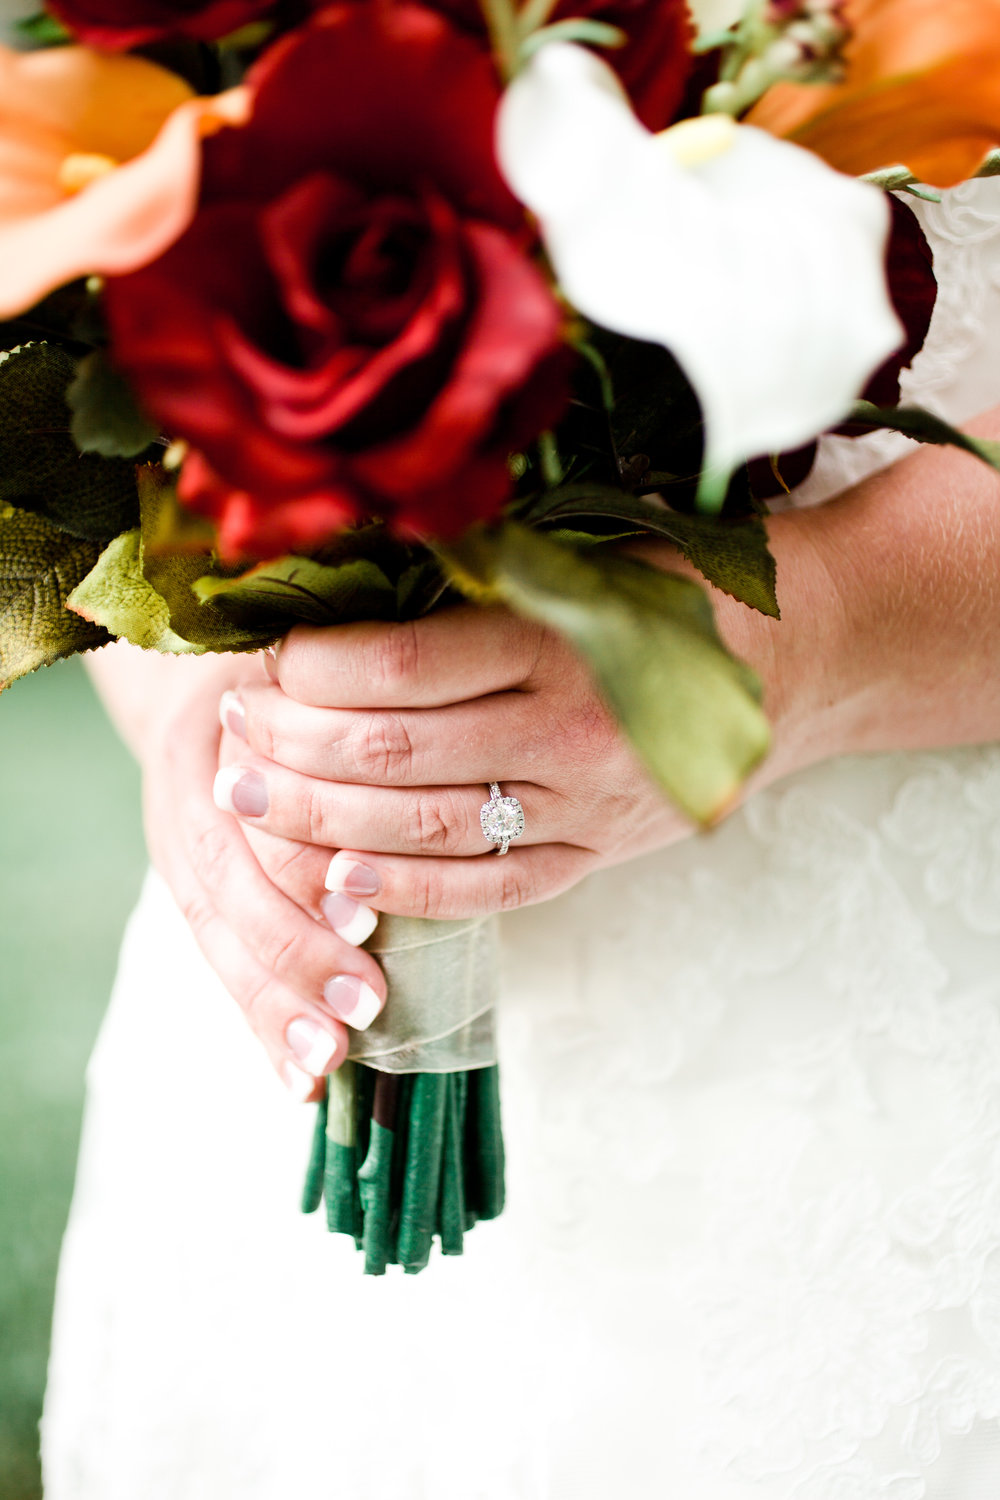 gabbie_bridal_poured_out_photography-11.jpg